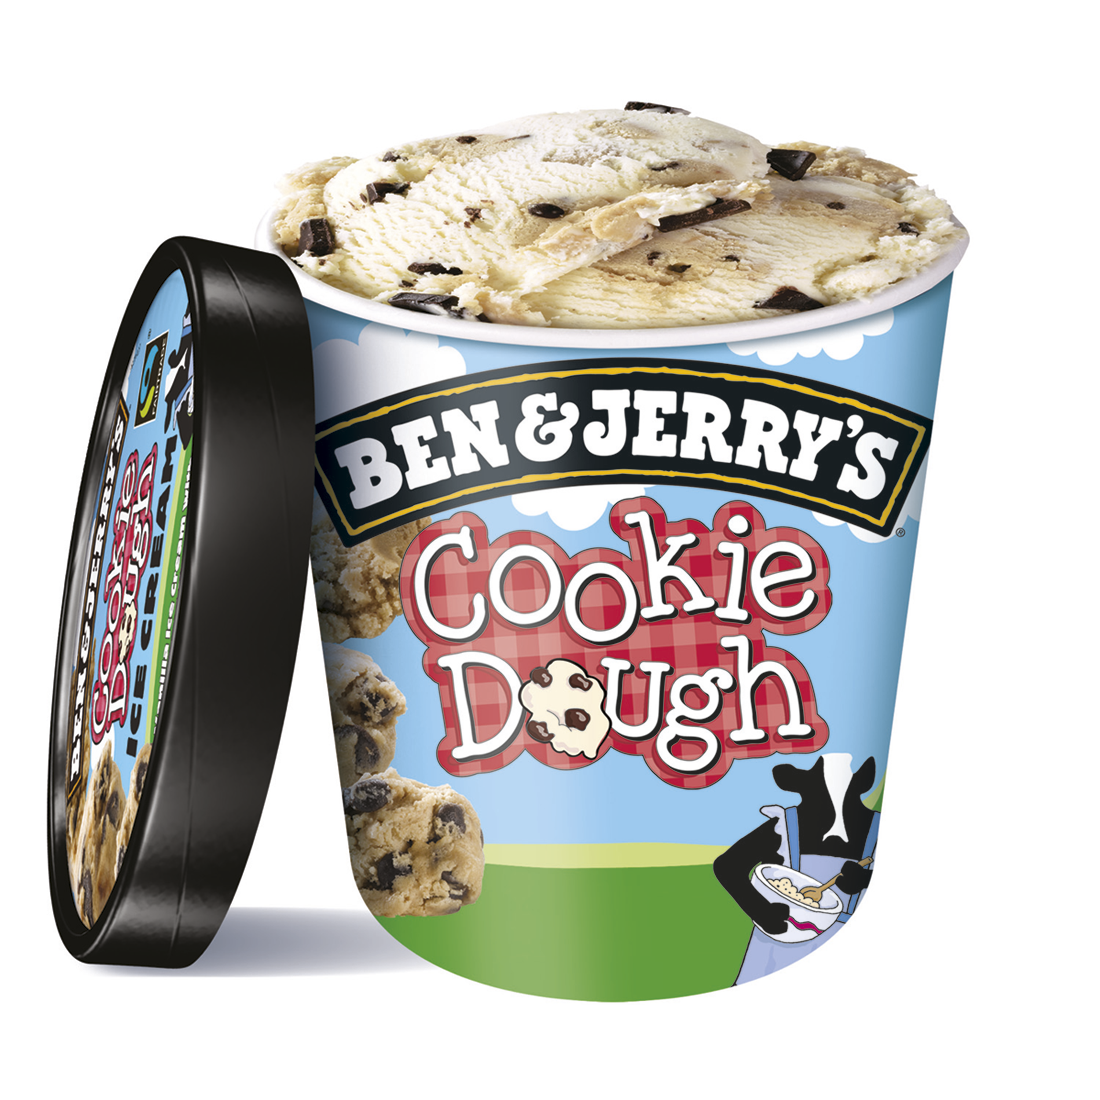 Ben & Jerry's cookie dough helado vainilla con cookies chocolate de 50cl. en tarrina